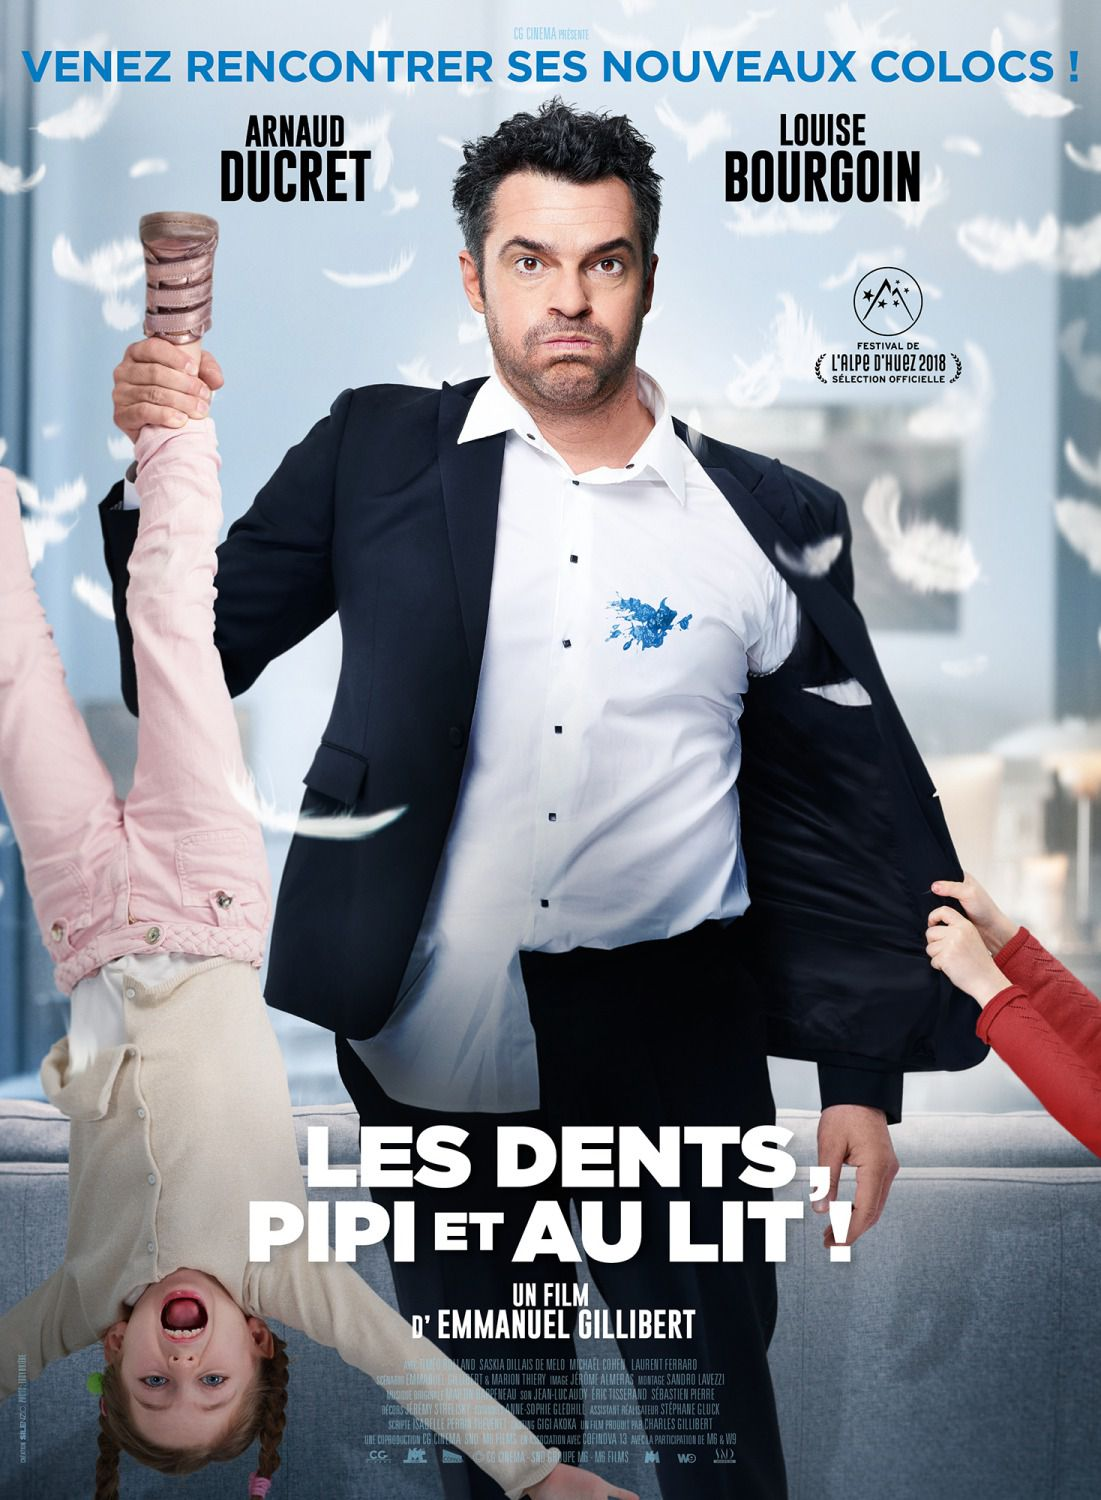 Les Dents Pipi et au Lit - comedy film poster